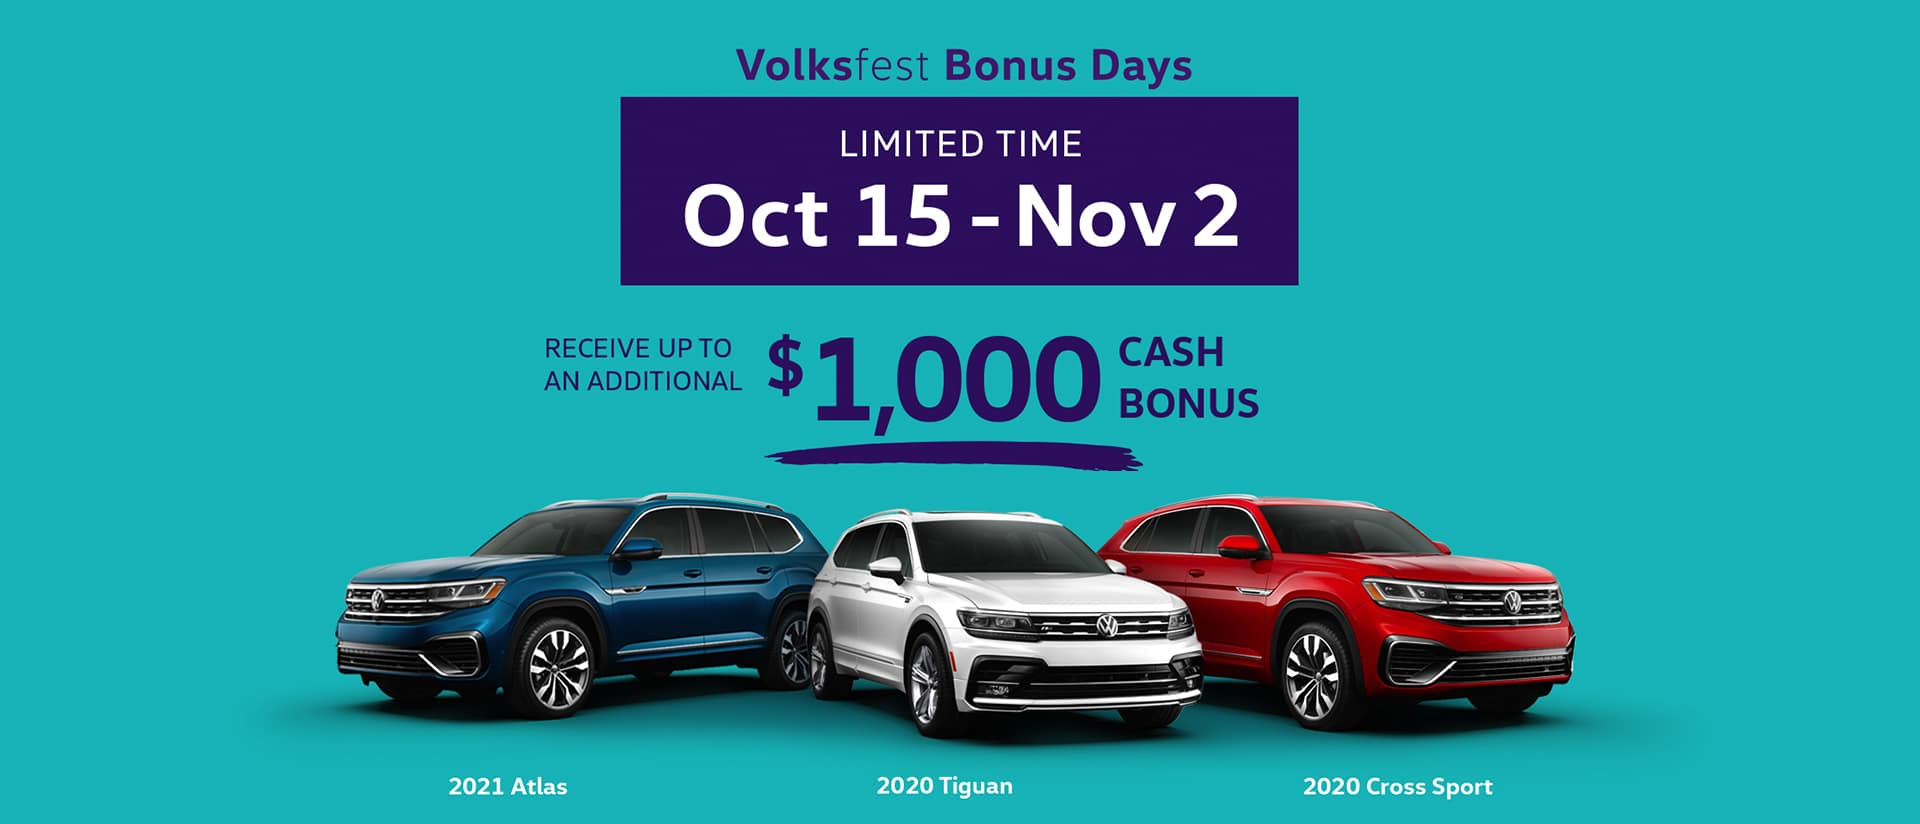 vw-20201014-1920×824-homepage-banner-octobersale